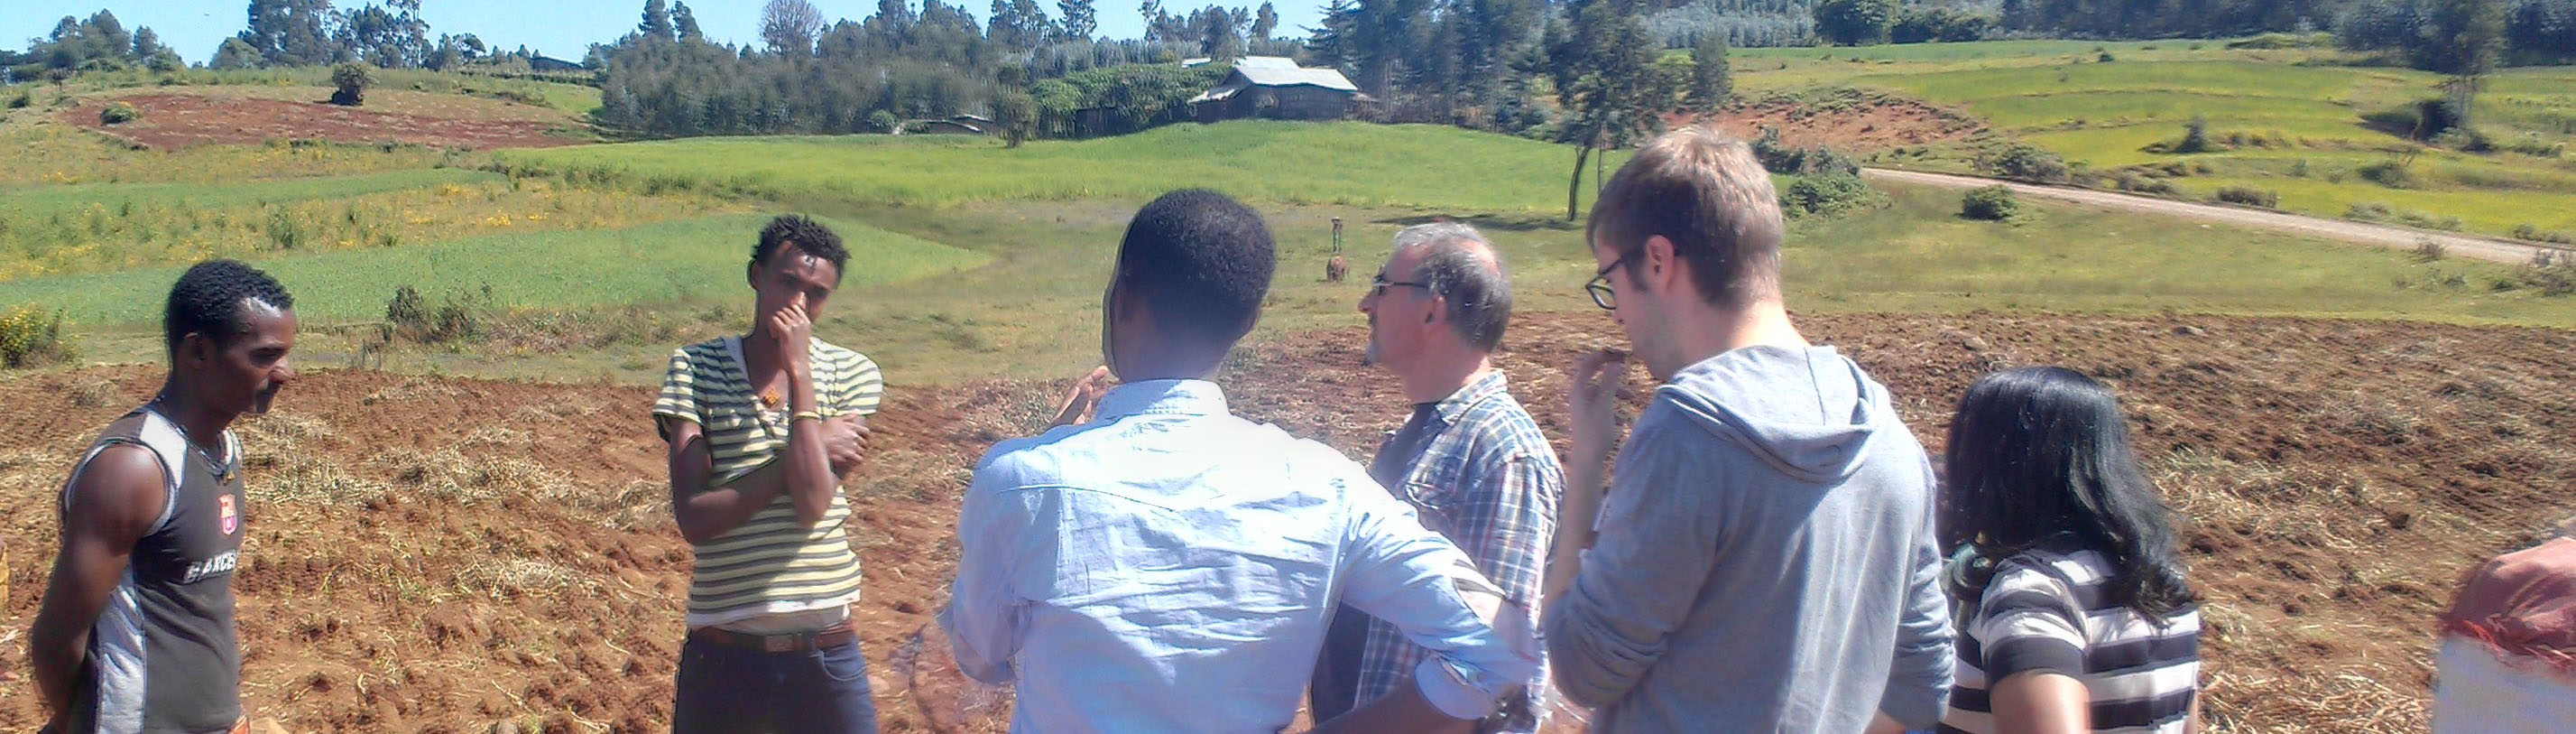 Field visit by the project team, Oct. 17, 2017 in Gendeberet, Ethiopia